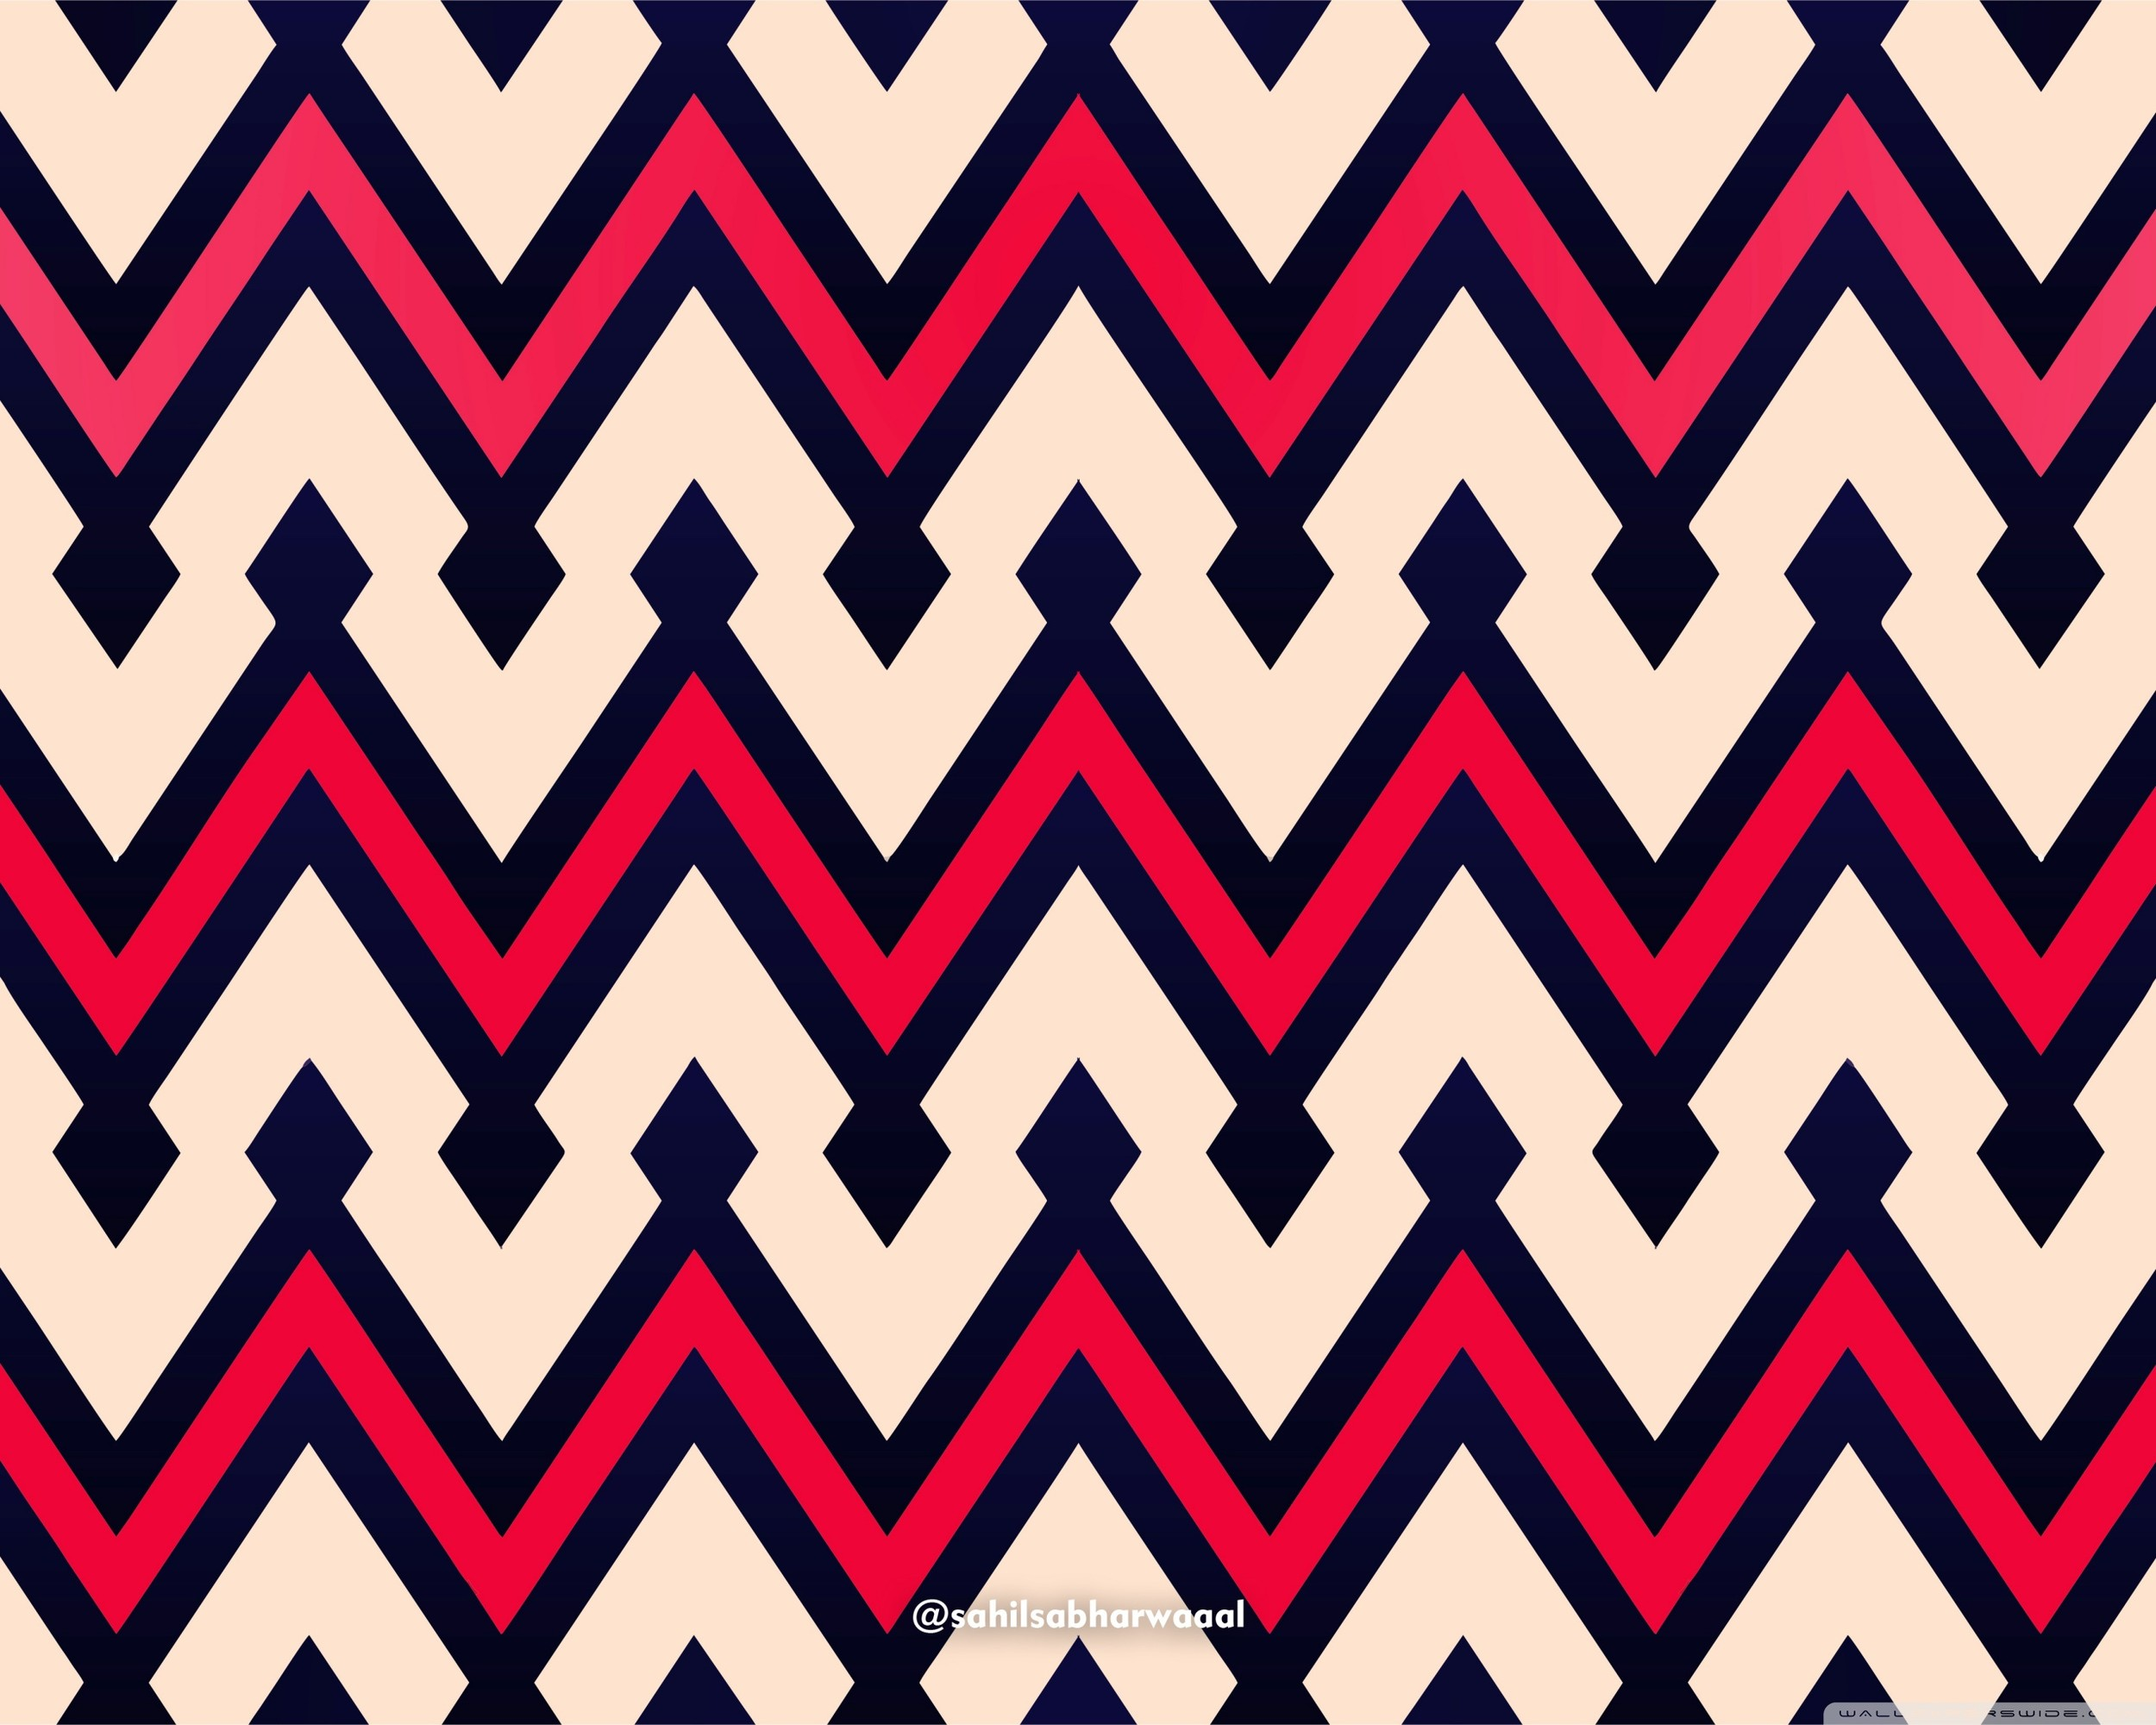 chevron pattern background - HD 1440×900